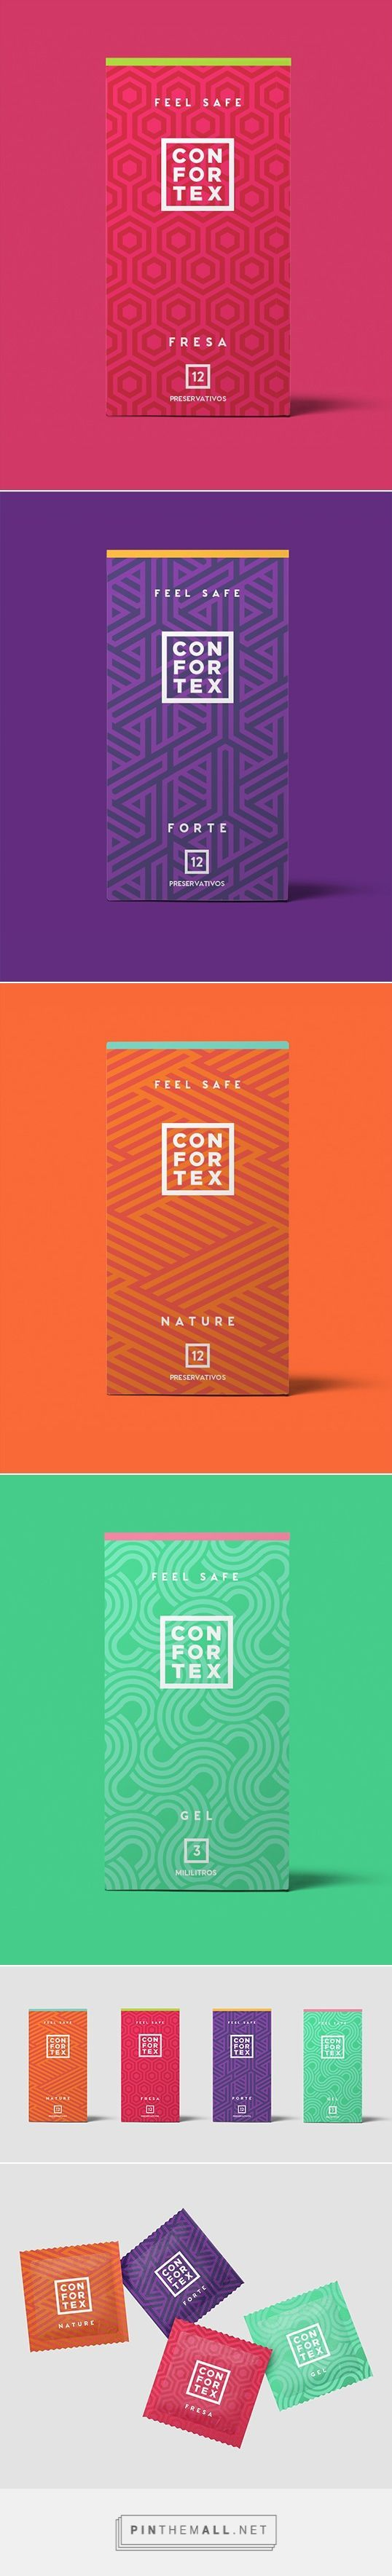 Confortex Condoms by The Wook Co. Pin curated by #SFields99 #packaging #design http://lovelypackage.com/confortex-condoms/